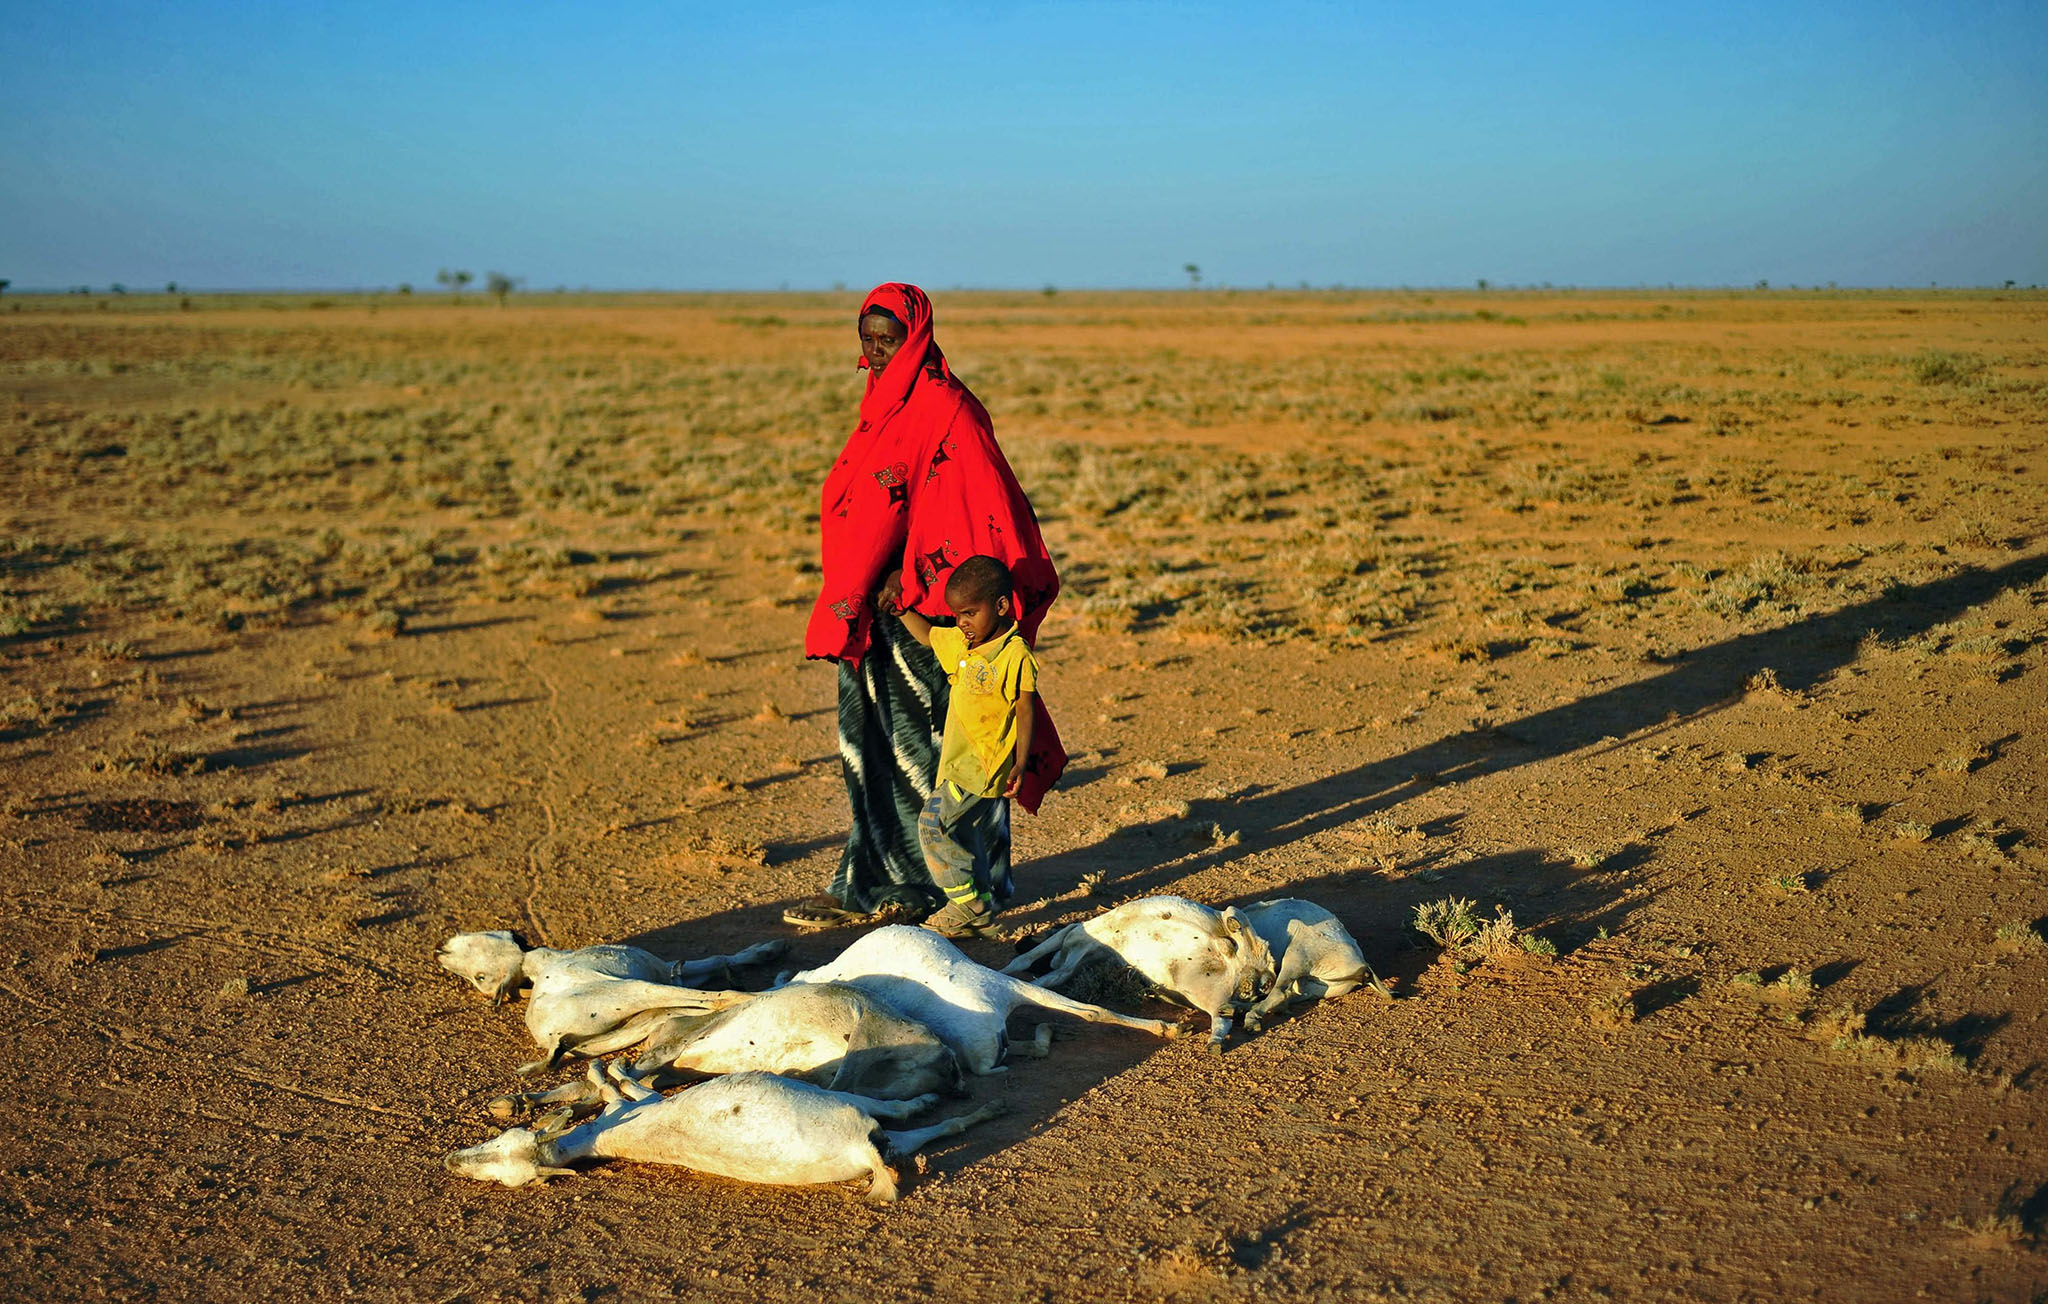 A woman and a boy walk past a flock of dead goats in a dry land close to Dhahar in Puntland, northeastern Somalia, on December 15, 2016.  Drought in the region has severely affected livestock for local herdsmen.  / AFP PHOTO / MOHAMED ABDIWAHABMOHAMED ABDIWAHAB/AFP/Getty Images